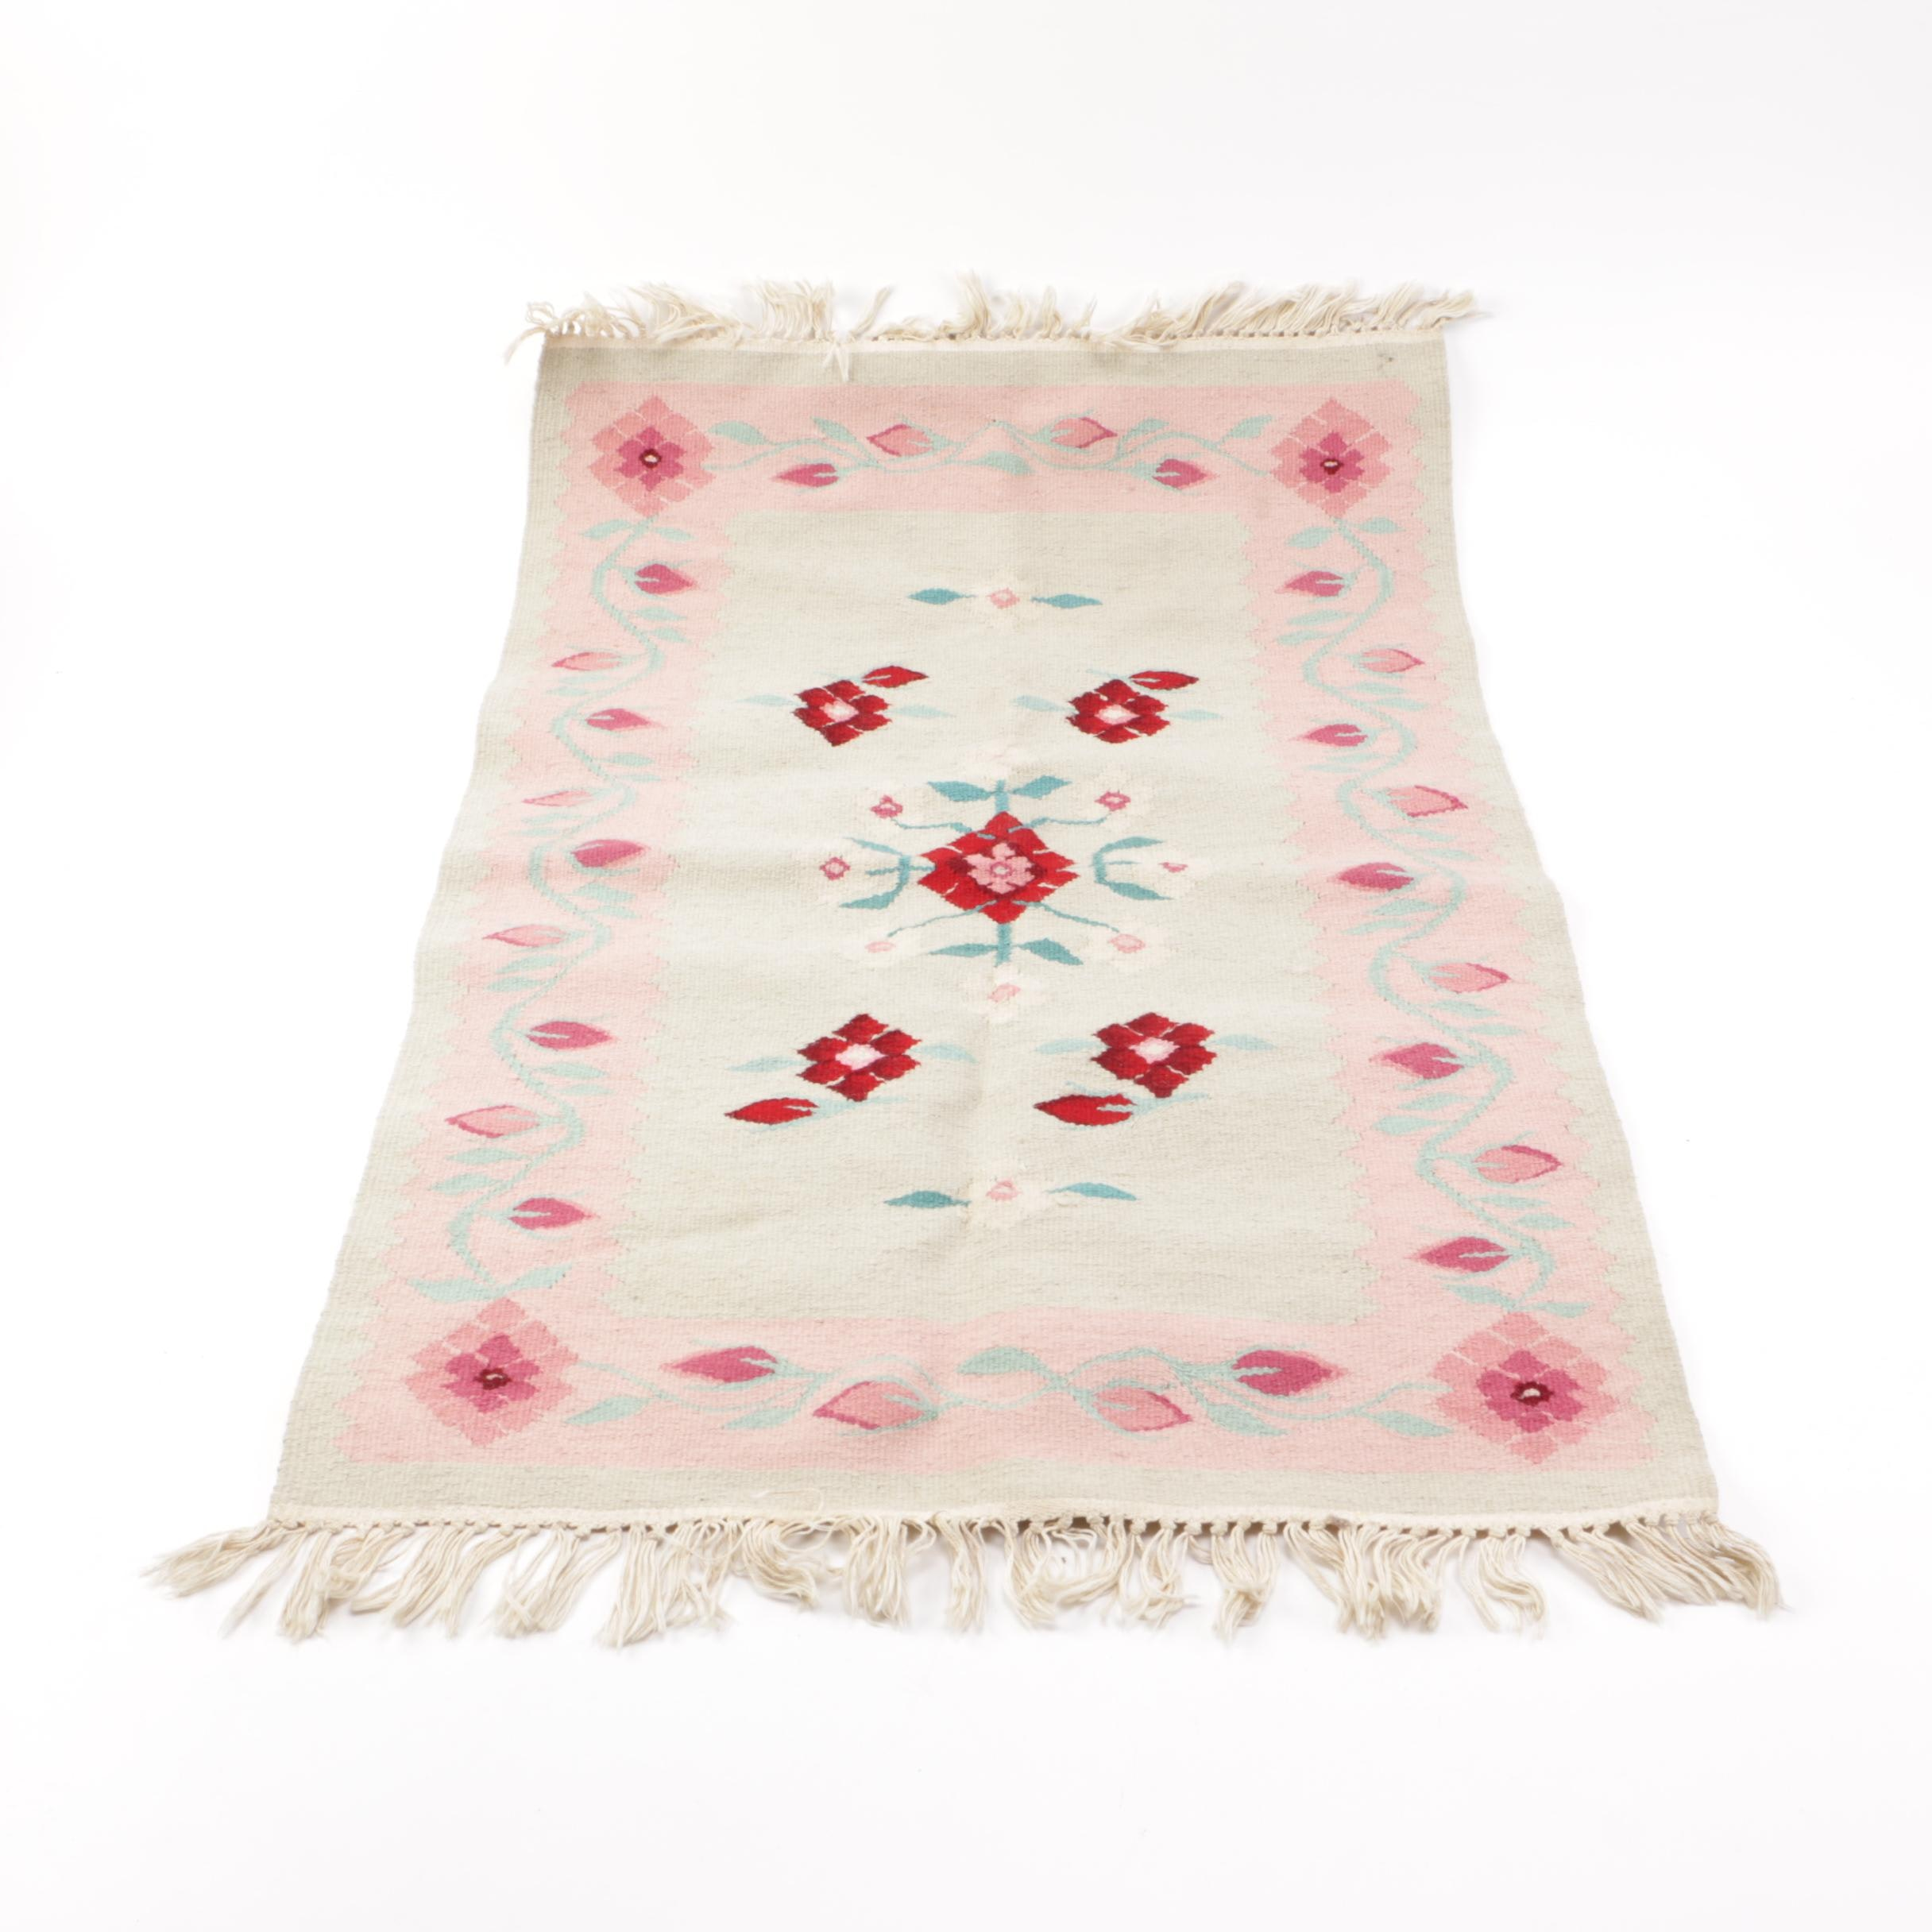 Handwoven Floral Wool Accent Mat